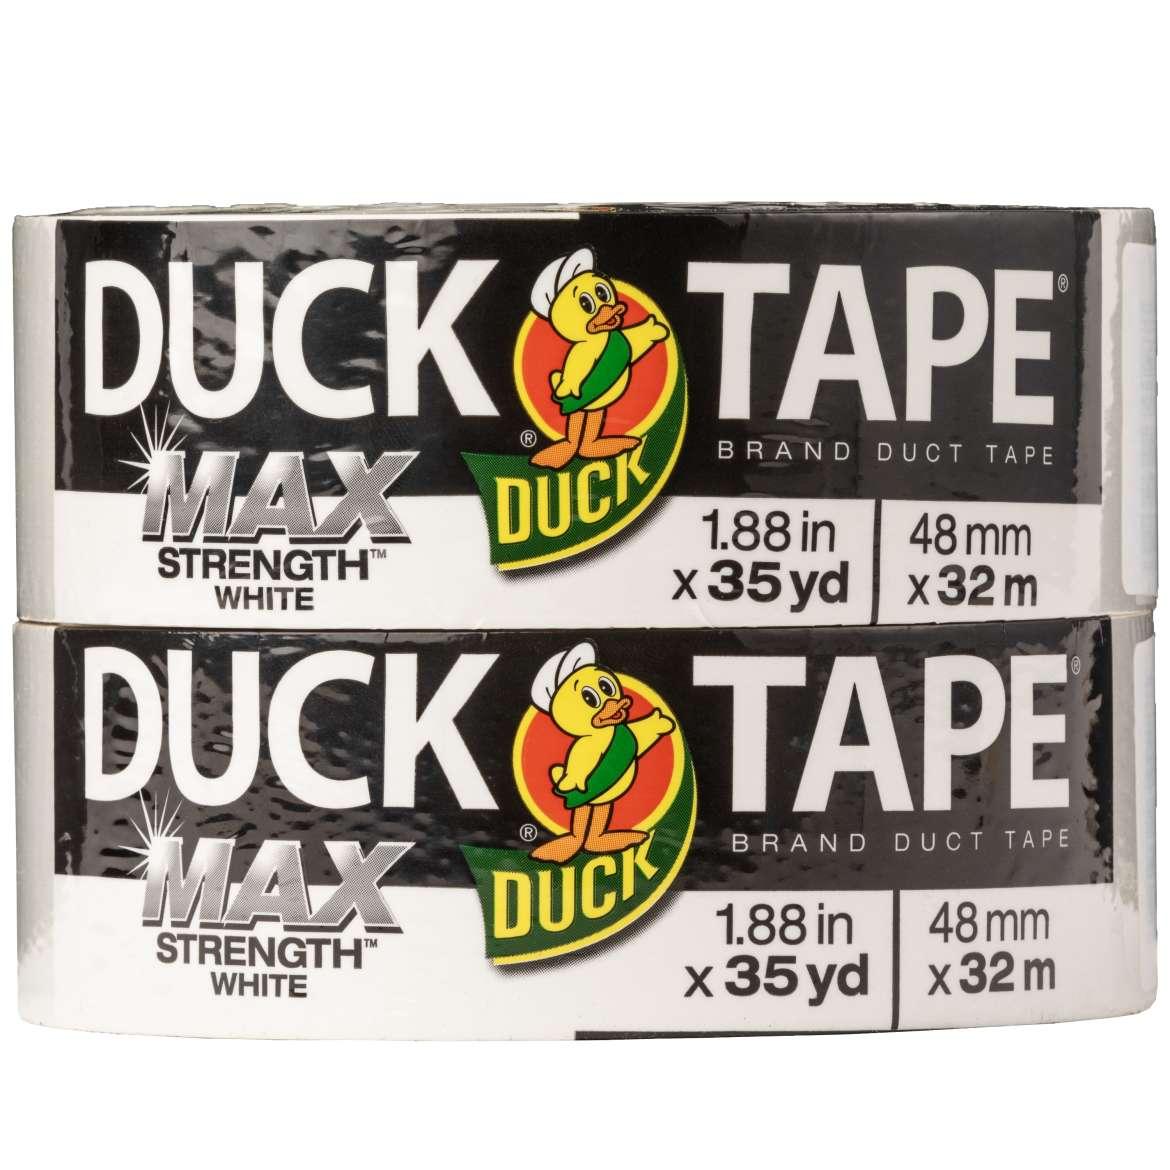 Duck Max Strength® Duct Tape Image